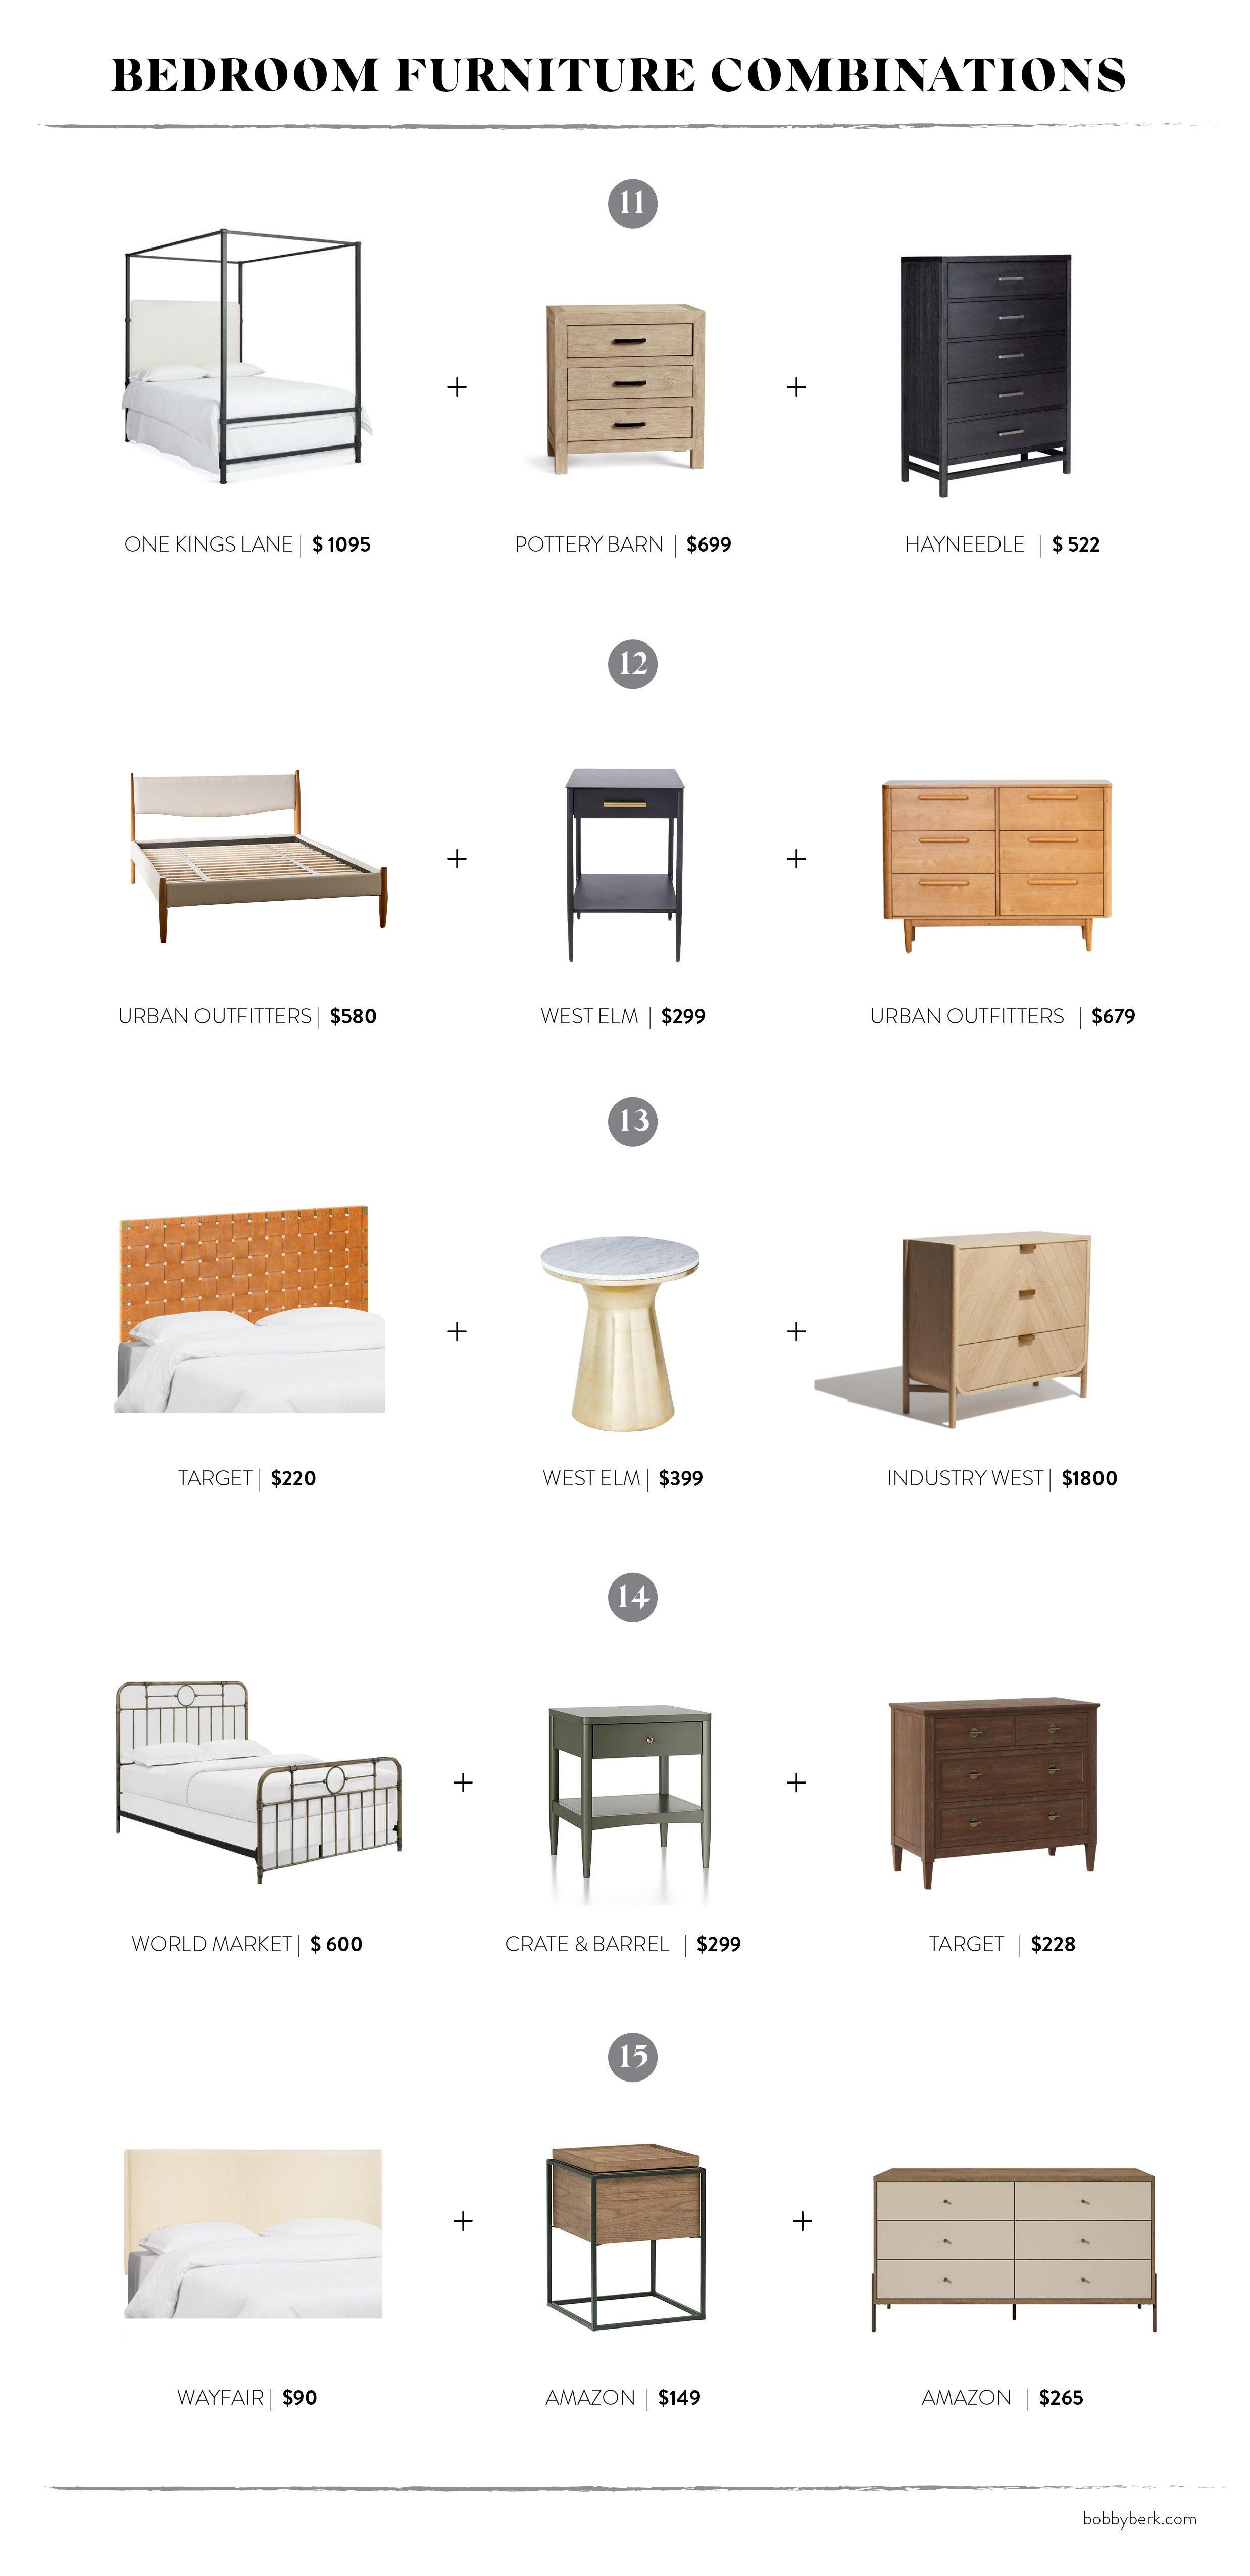 Mixing It Up: 3 Bedroom Furniture Pairings That Work - Bobby Berk